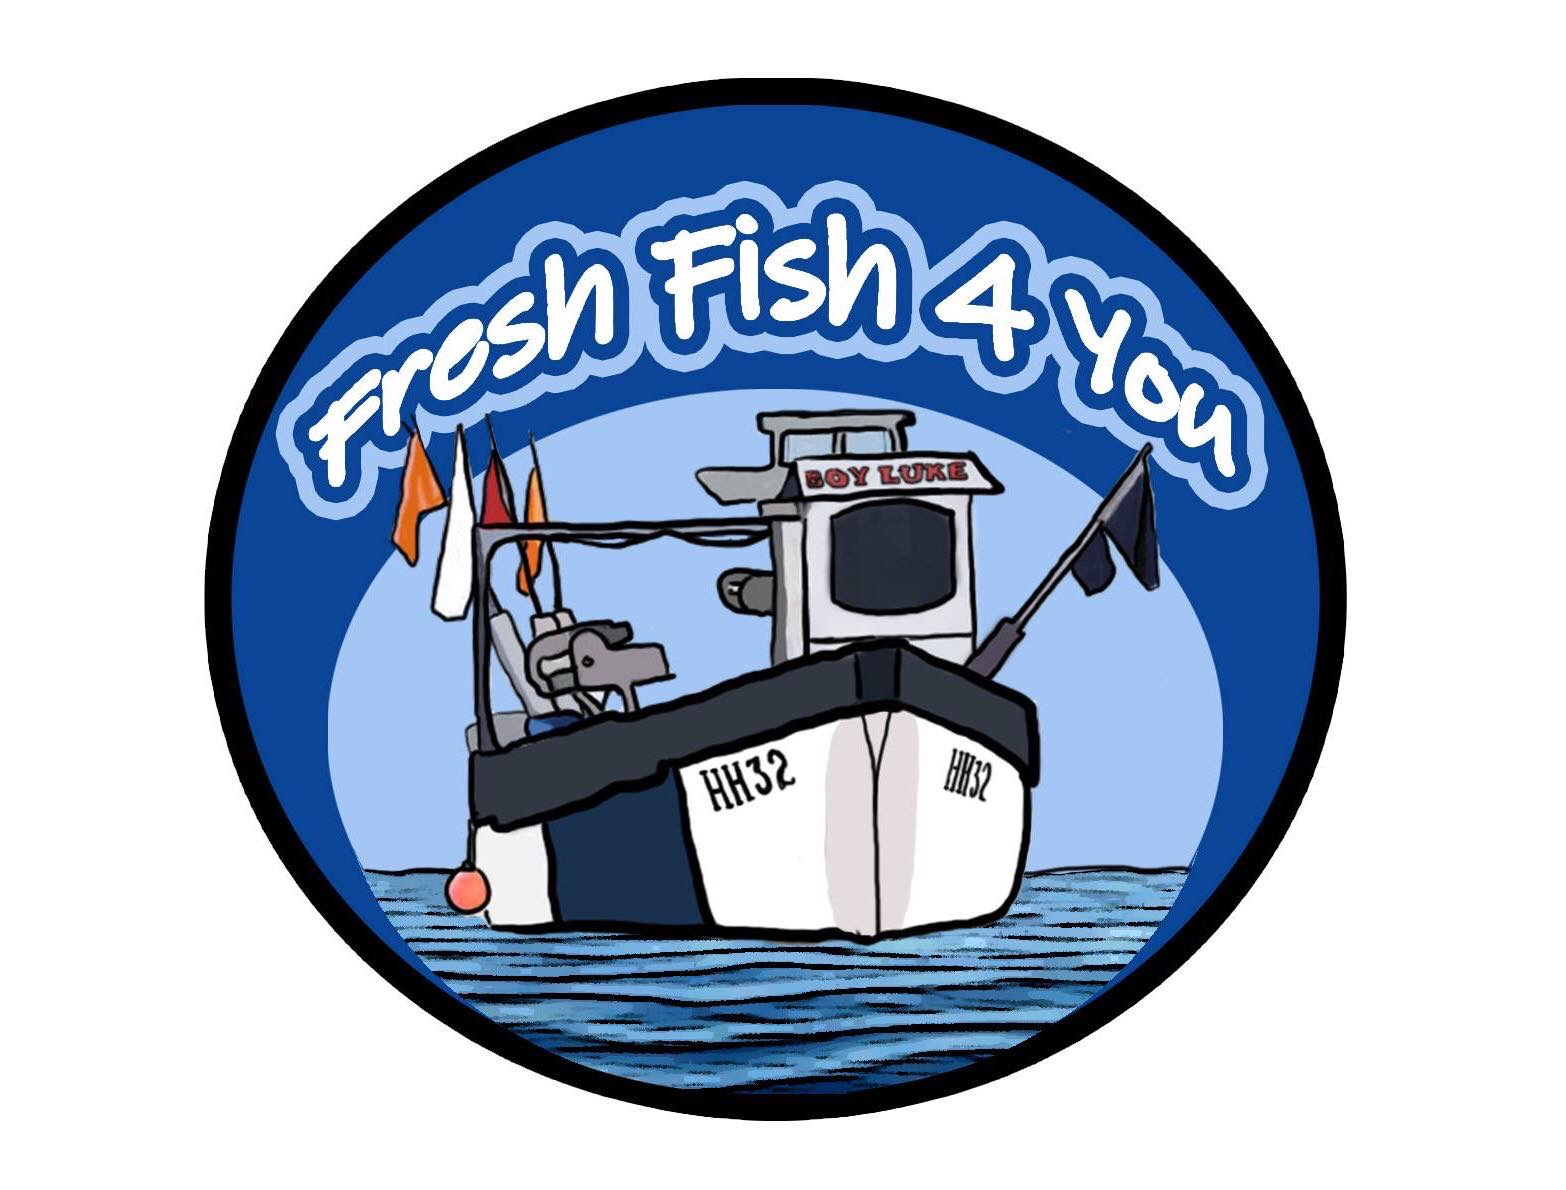 Fresh fish 4 you